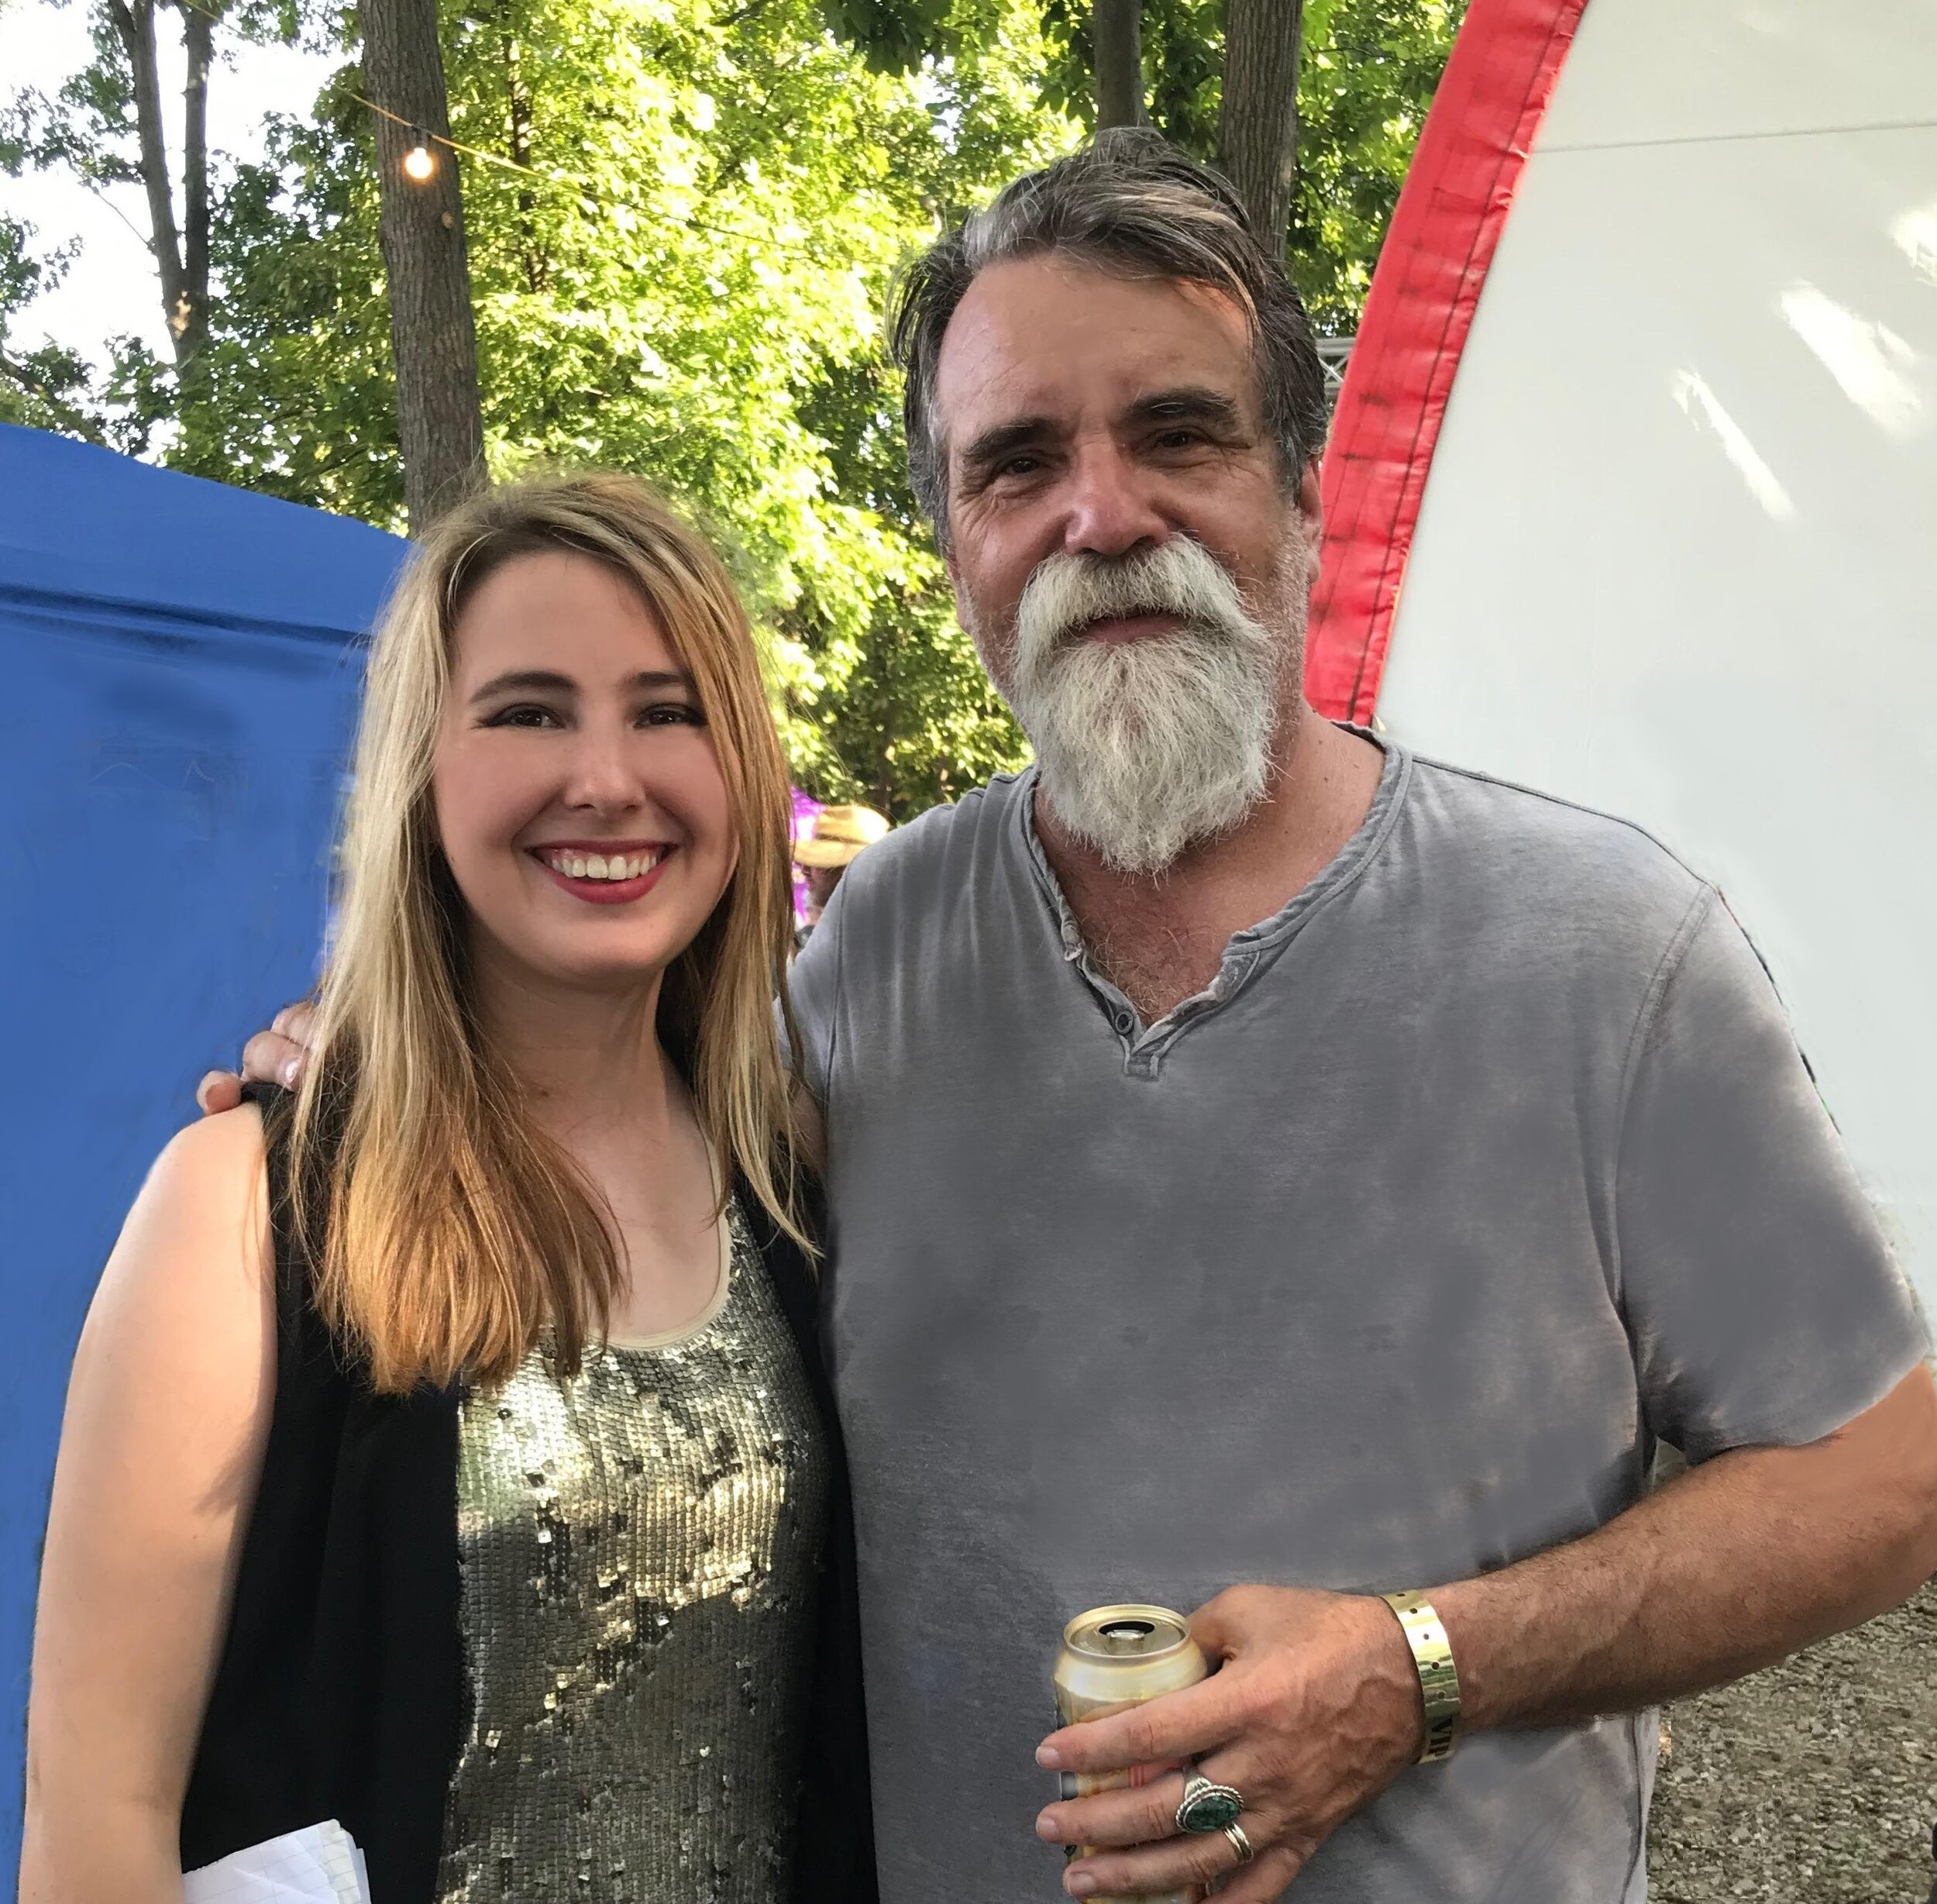 """I played before one of my heroes, the great songwriter, Darrell Scott, """"It's A Great Day to Be Alive"""" (Travis Tritt,) """"You'll Never Leave Harlan Alive"""" (Patty Loveless) """"Hearbreak Town"""" ( Dixie Chicks) and got to hang out with him backstage in the green room in Illinois."""